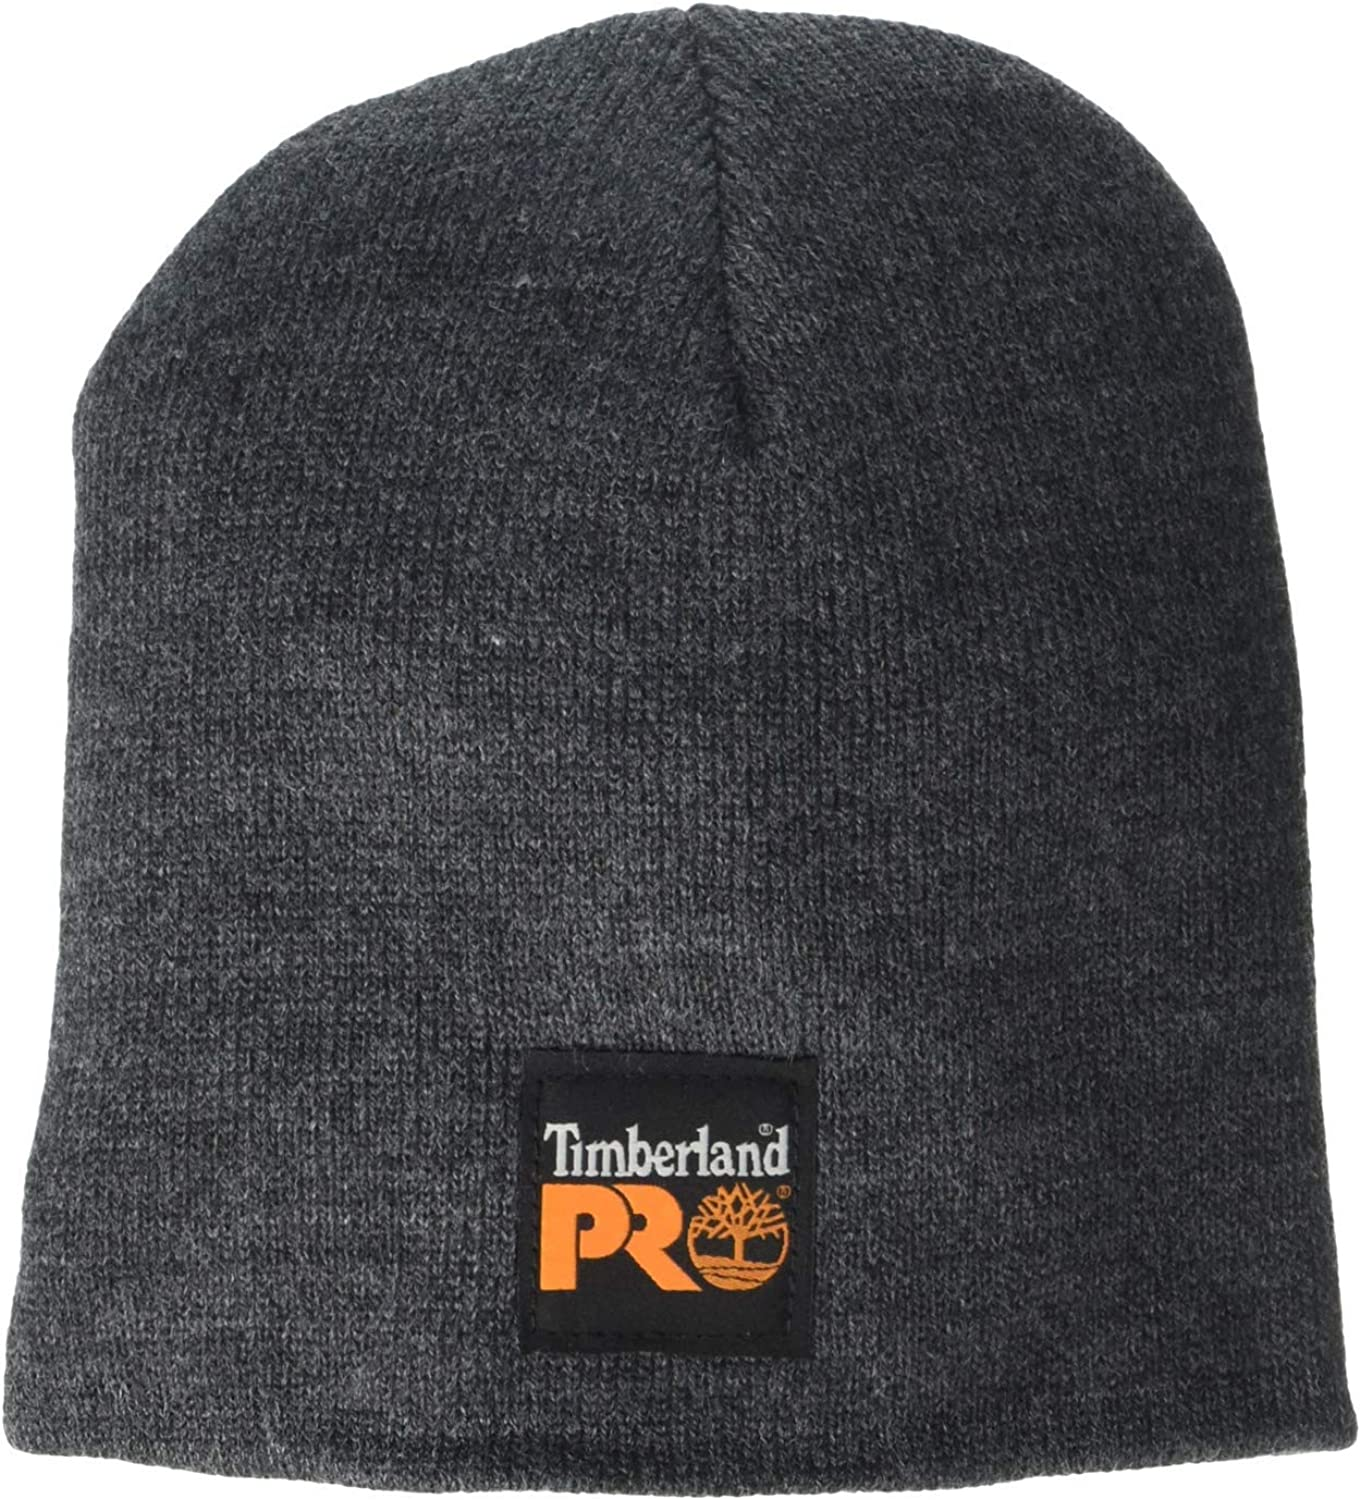 Timberland PRO Beanie Men's Translated Super special price